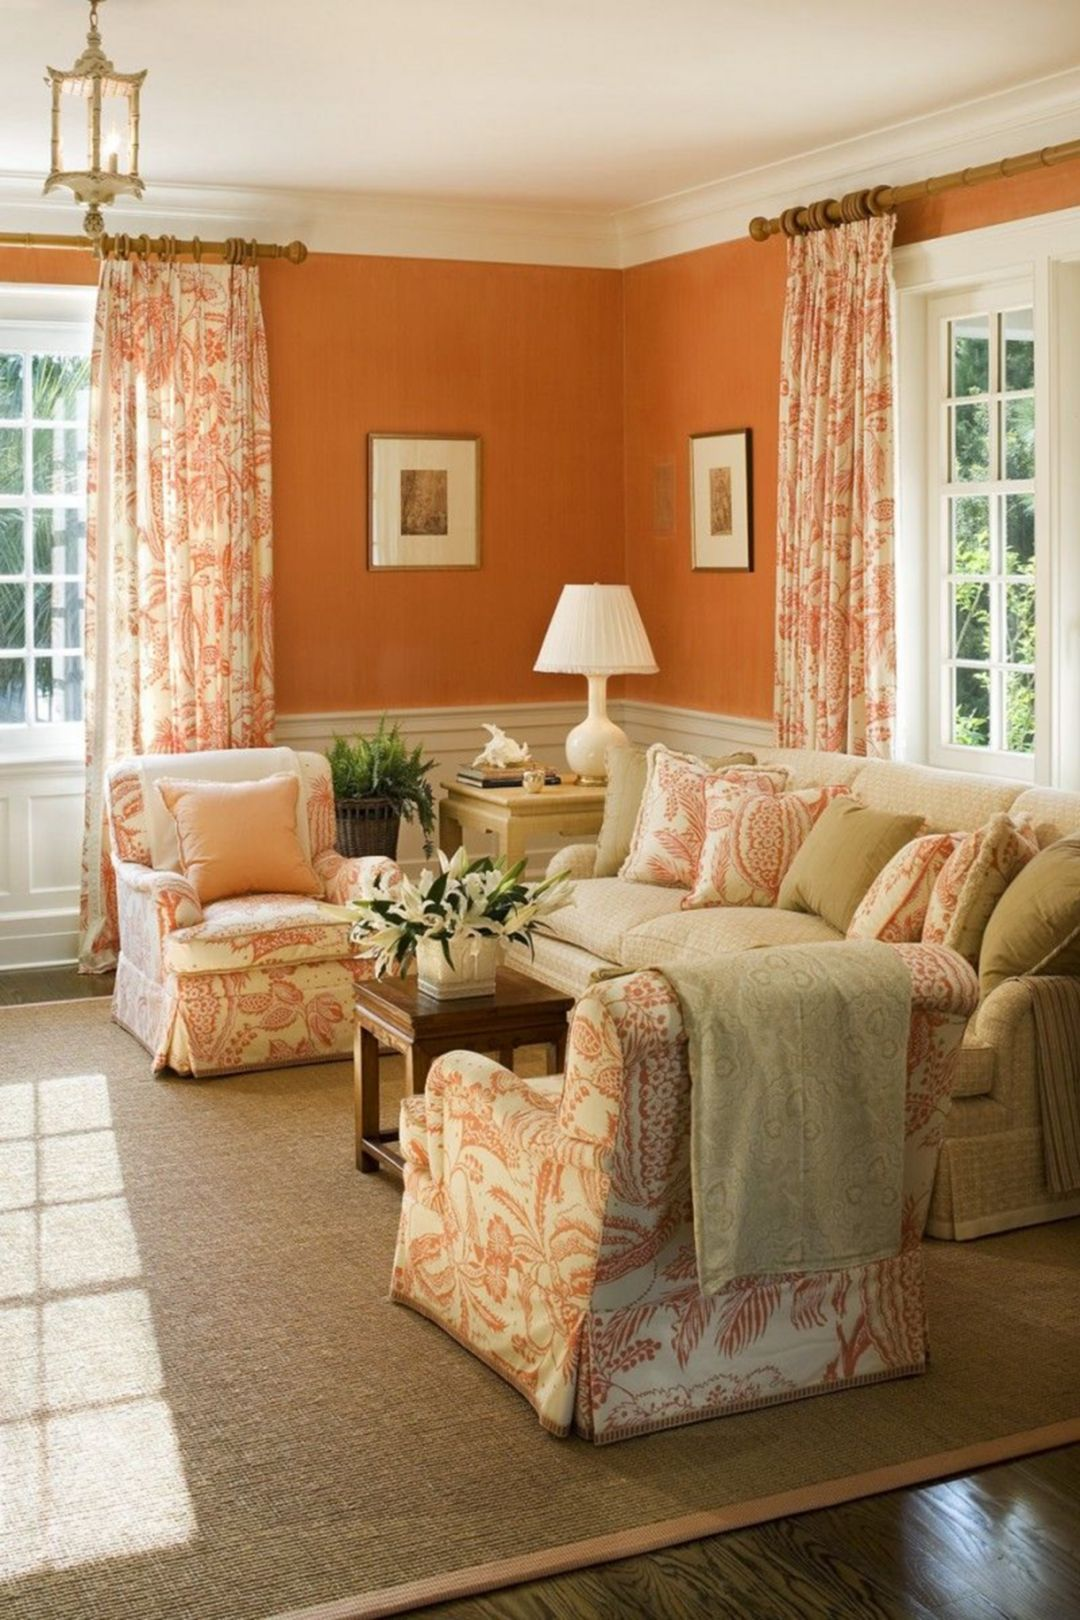 30 Charming Living Room Design With Orange Color Themes images